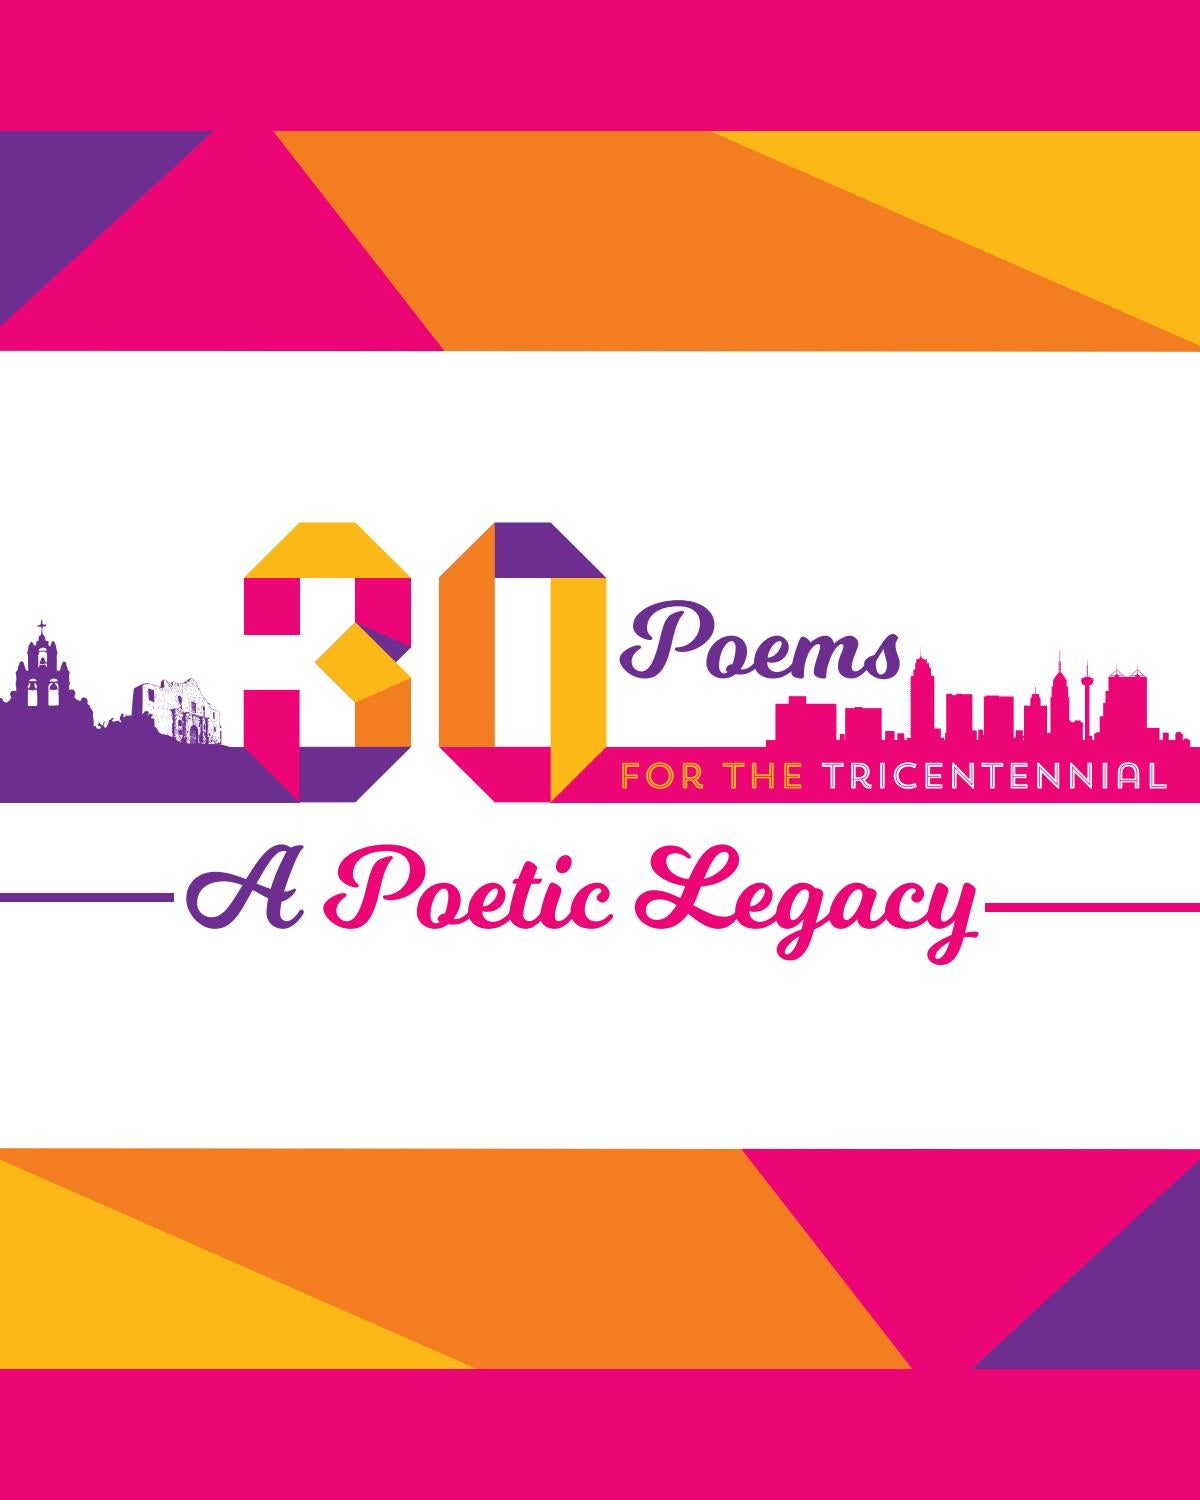 30 Poems for the Tricentennial by Gemini Ink - issuu